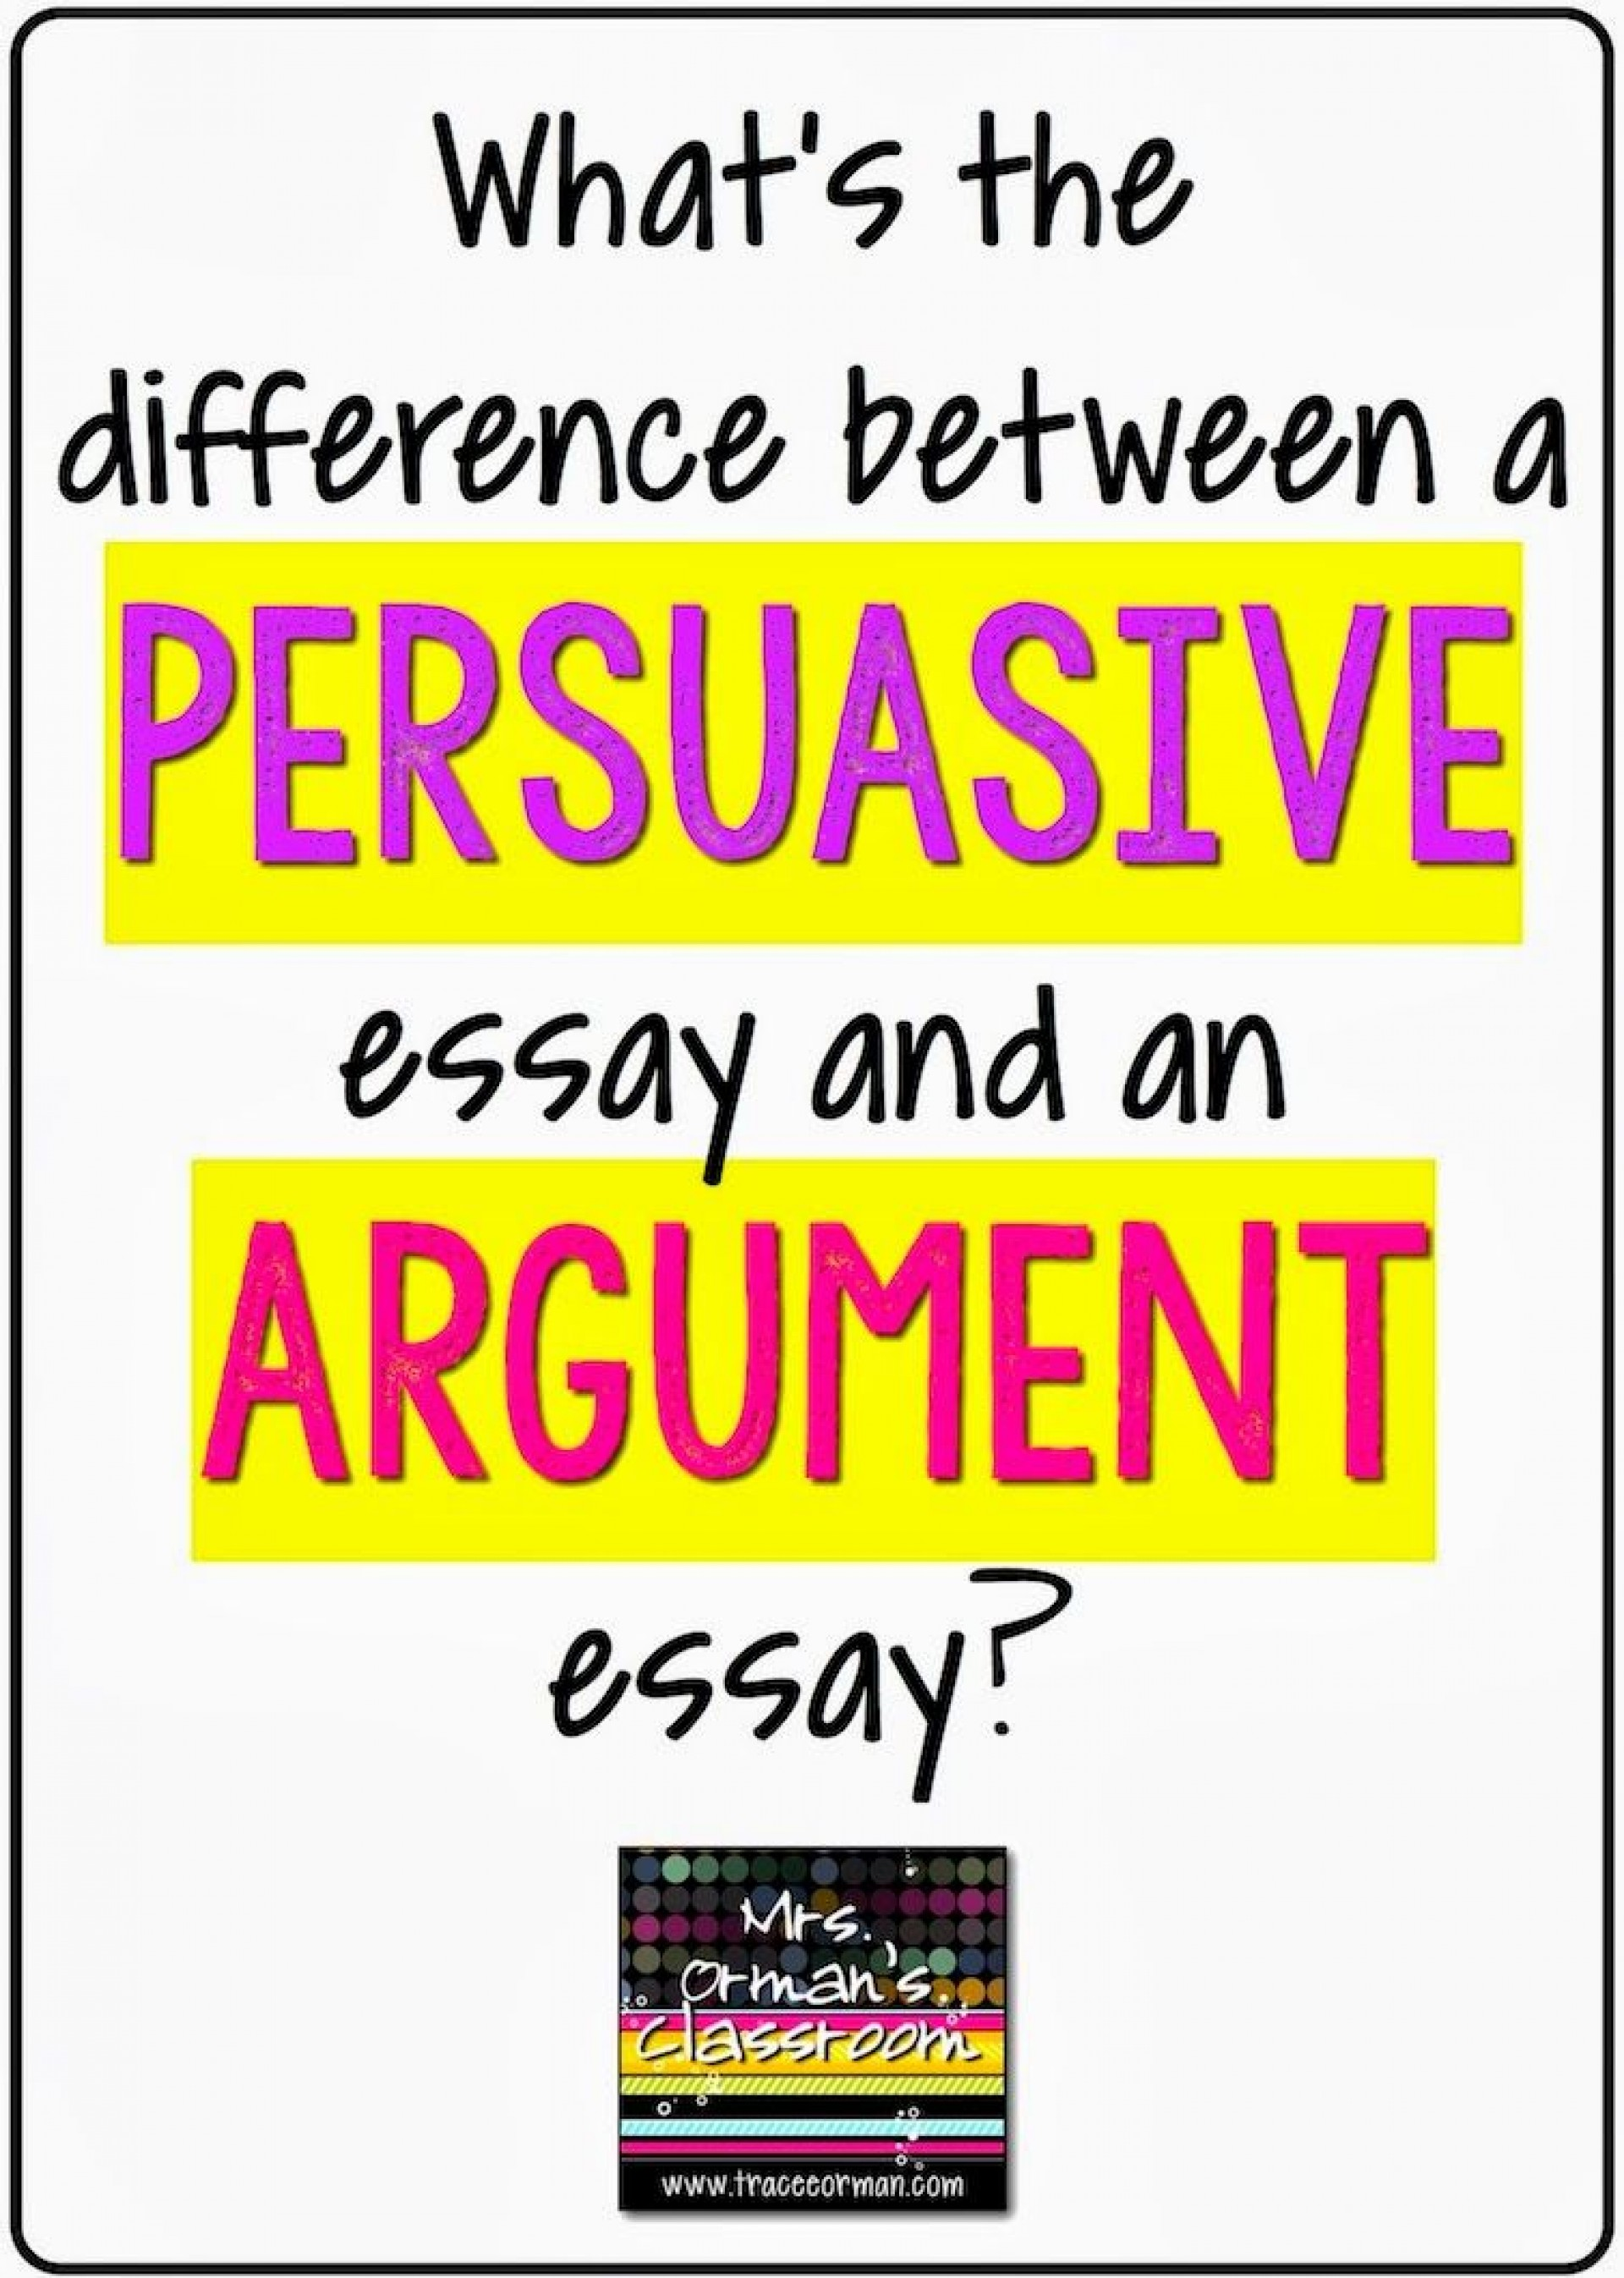 010 Persuasive Vs Argumentative Essay Example Awful Are And Essays The Same Differentiate 1920